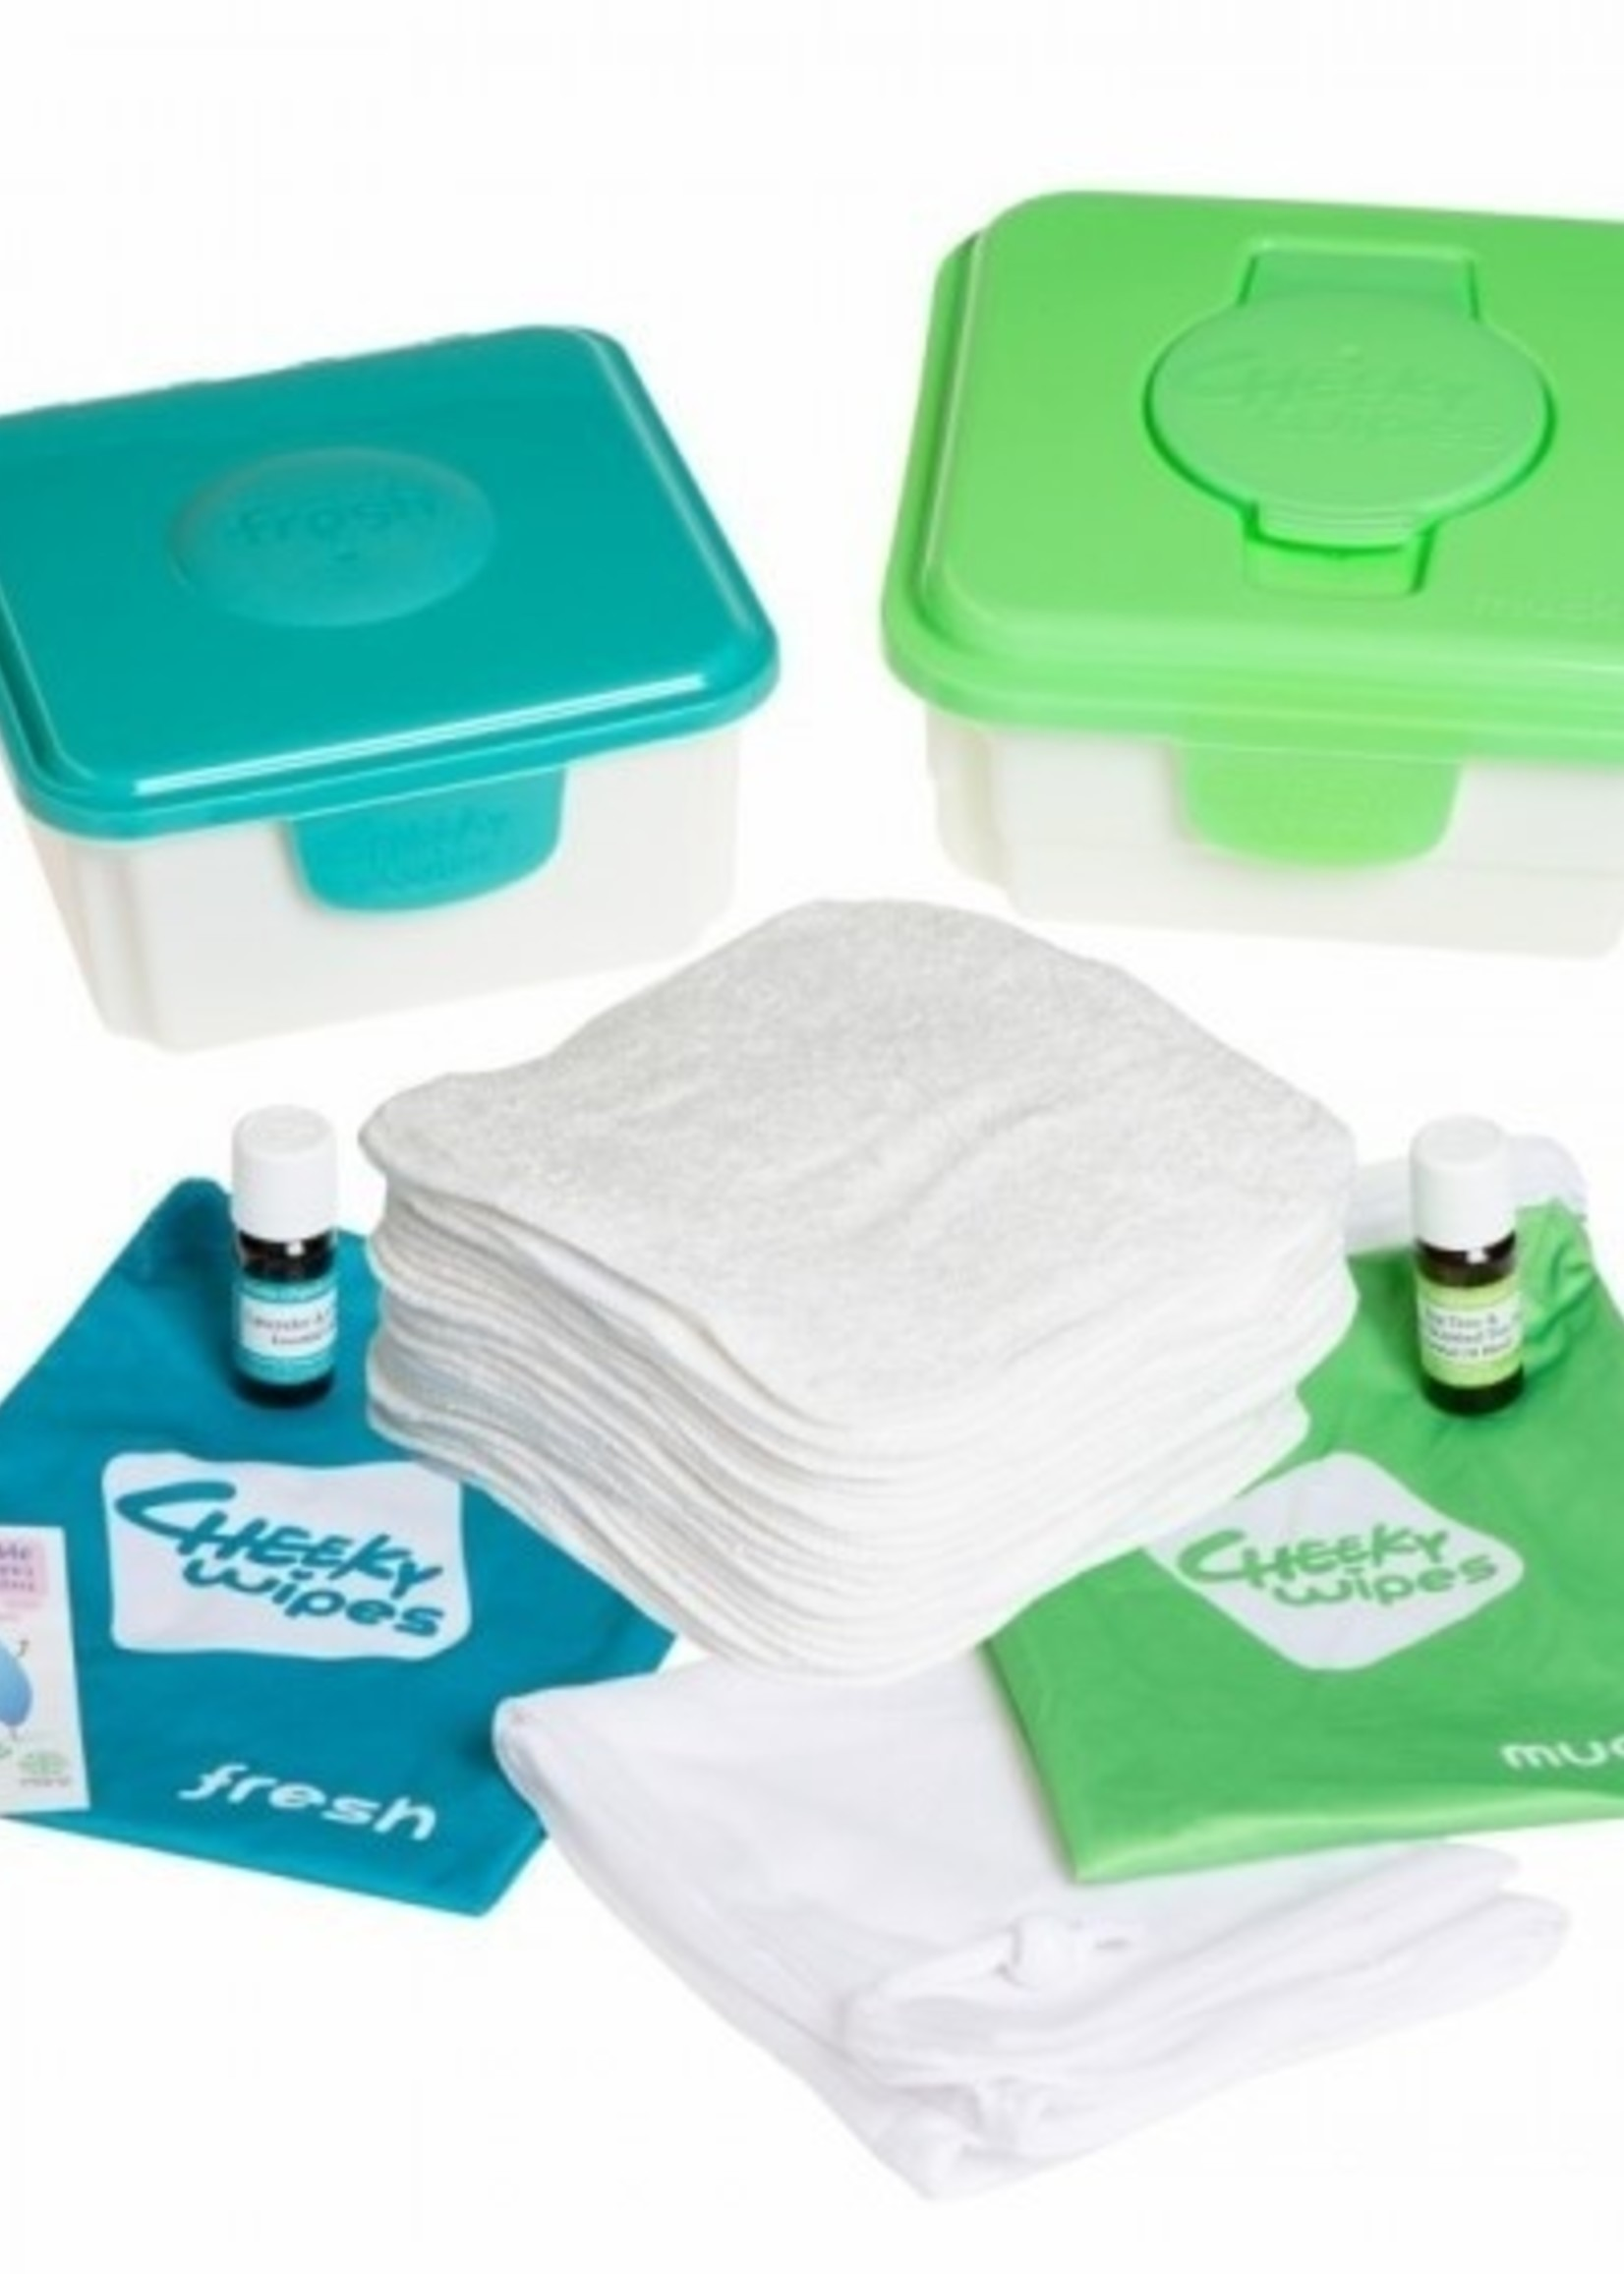 Cheeky Wipes Baby Wipes - All-In-One Kit - Pink